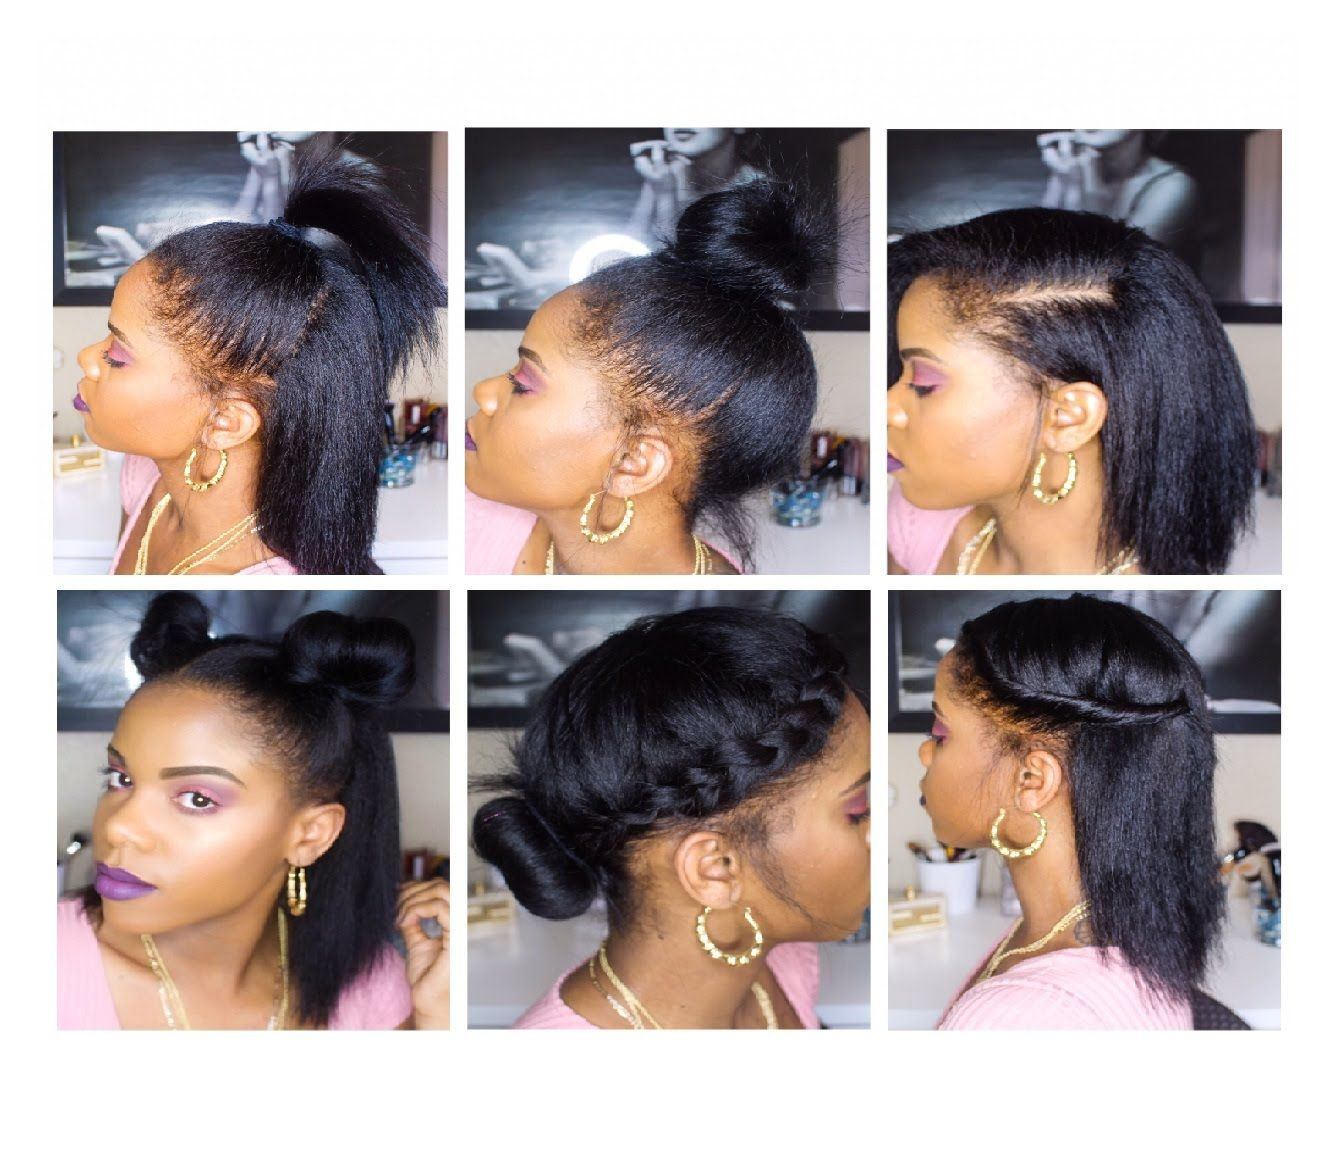 10 Easy Back To School Hairstyles For Short Straight Hair Natural Straight Hair Straight Hairstyles Short Straight Hair